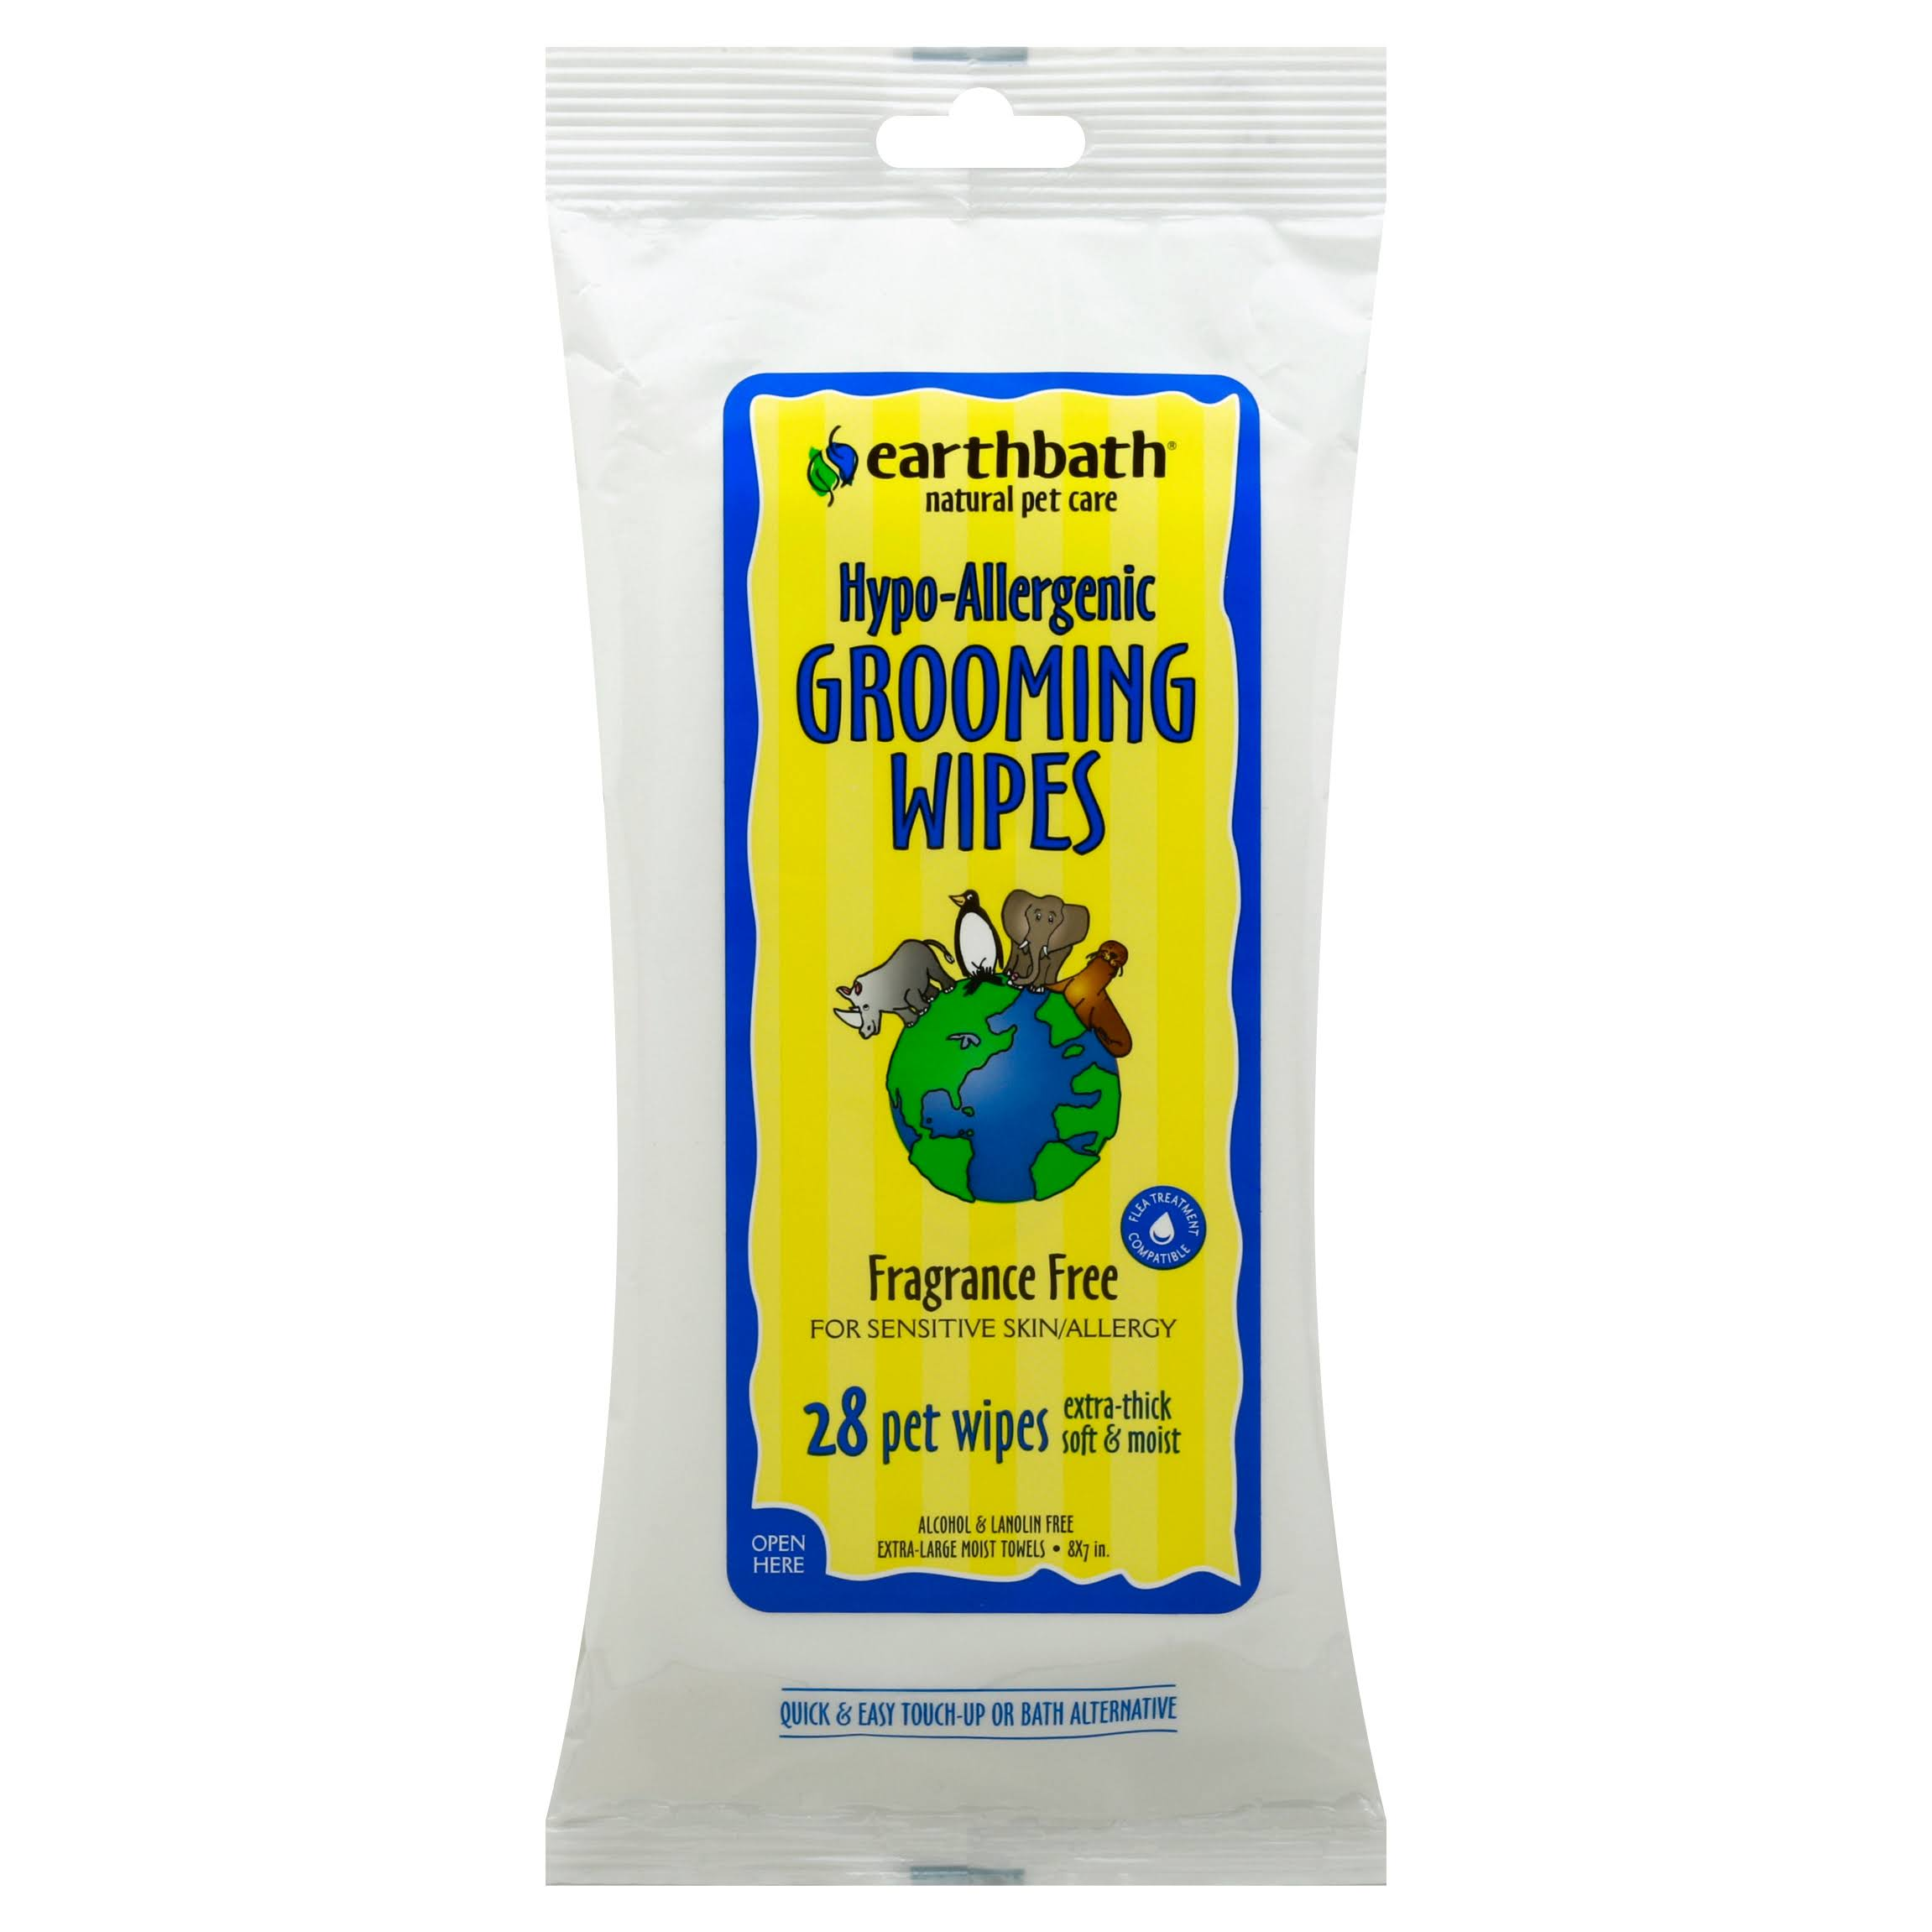 Earthbath Grooming Wipes - 28 Pet Wipes